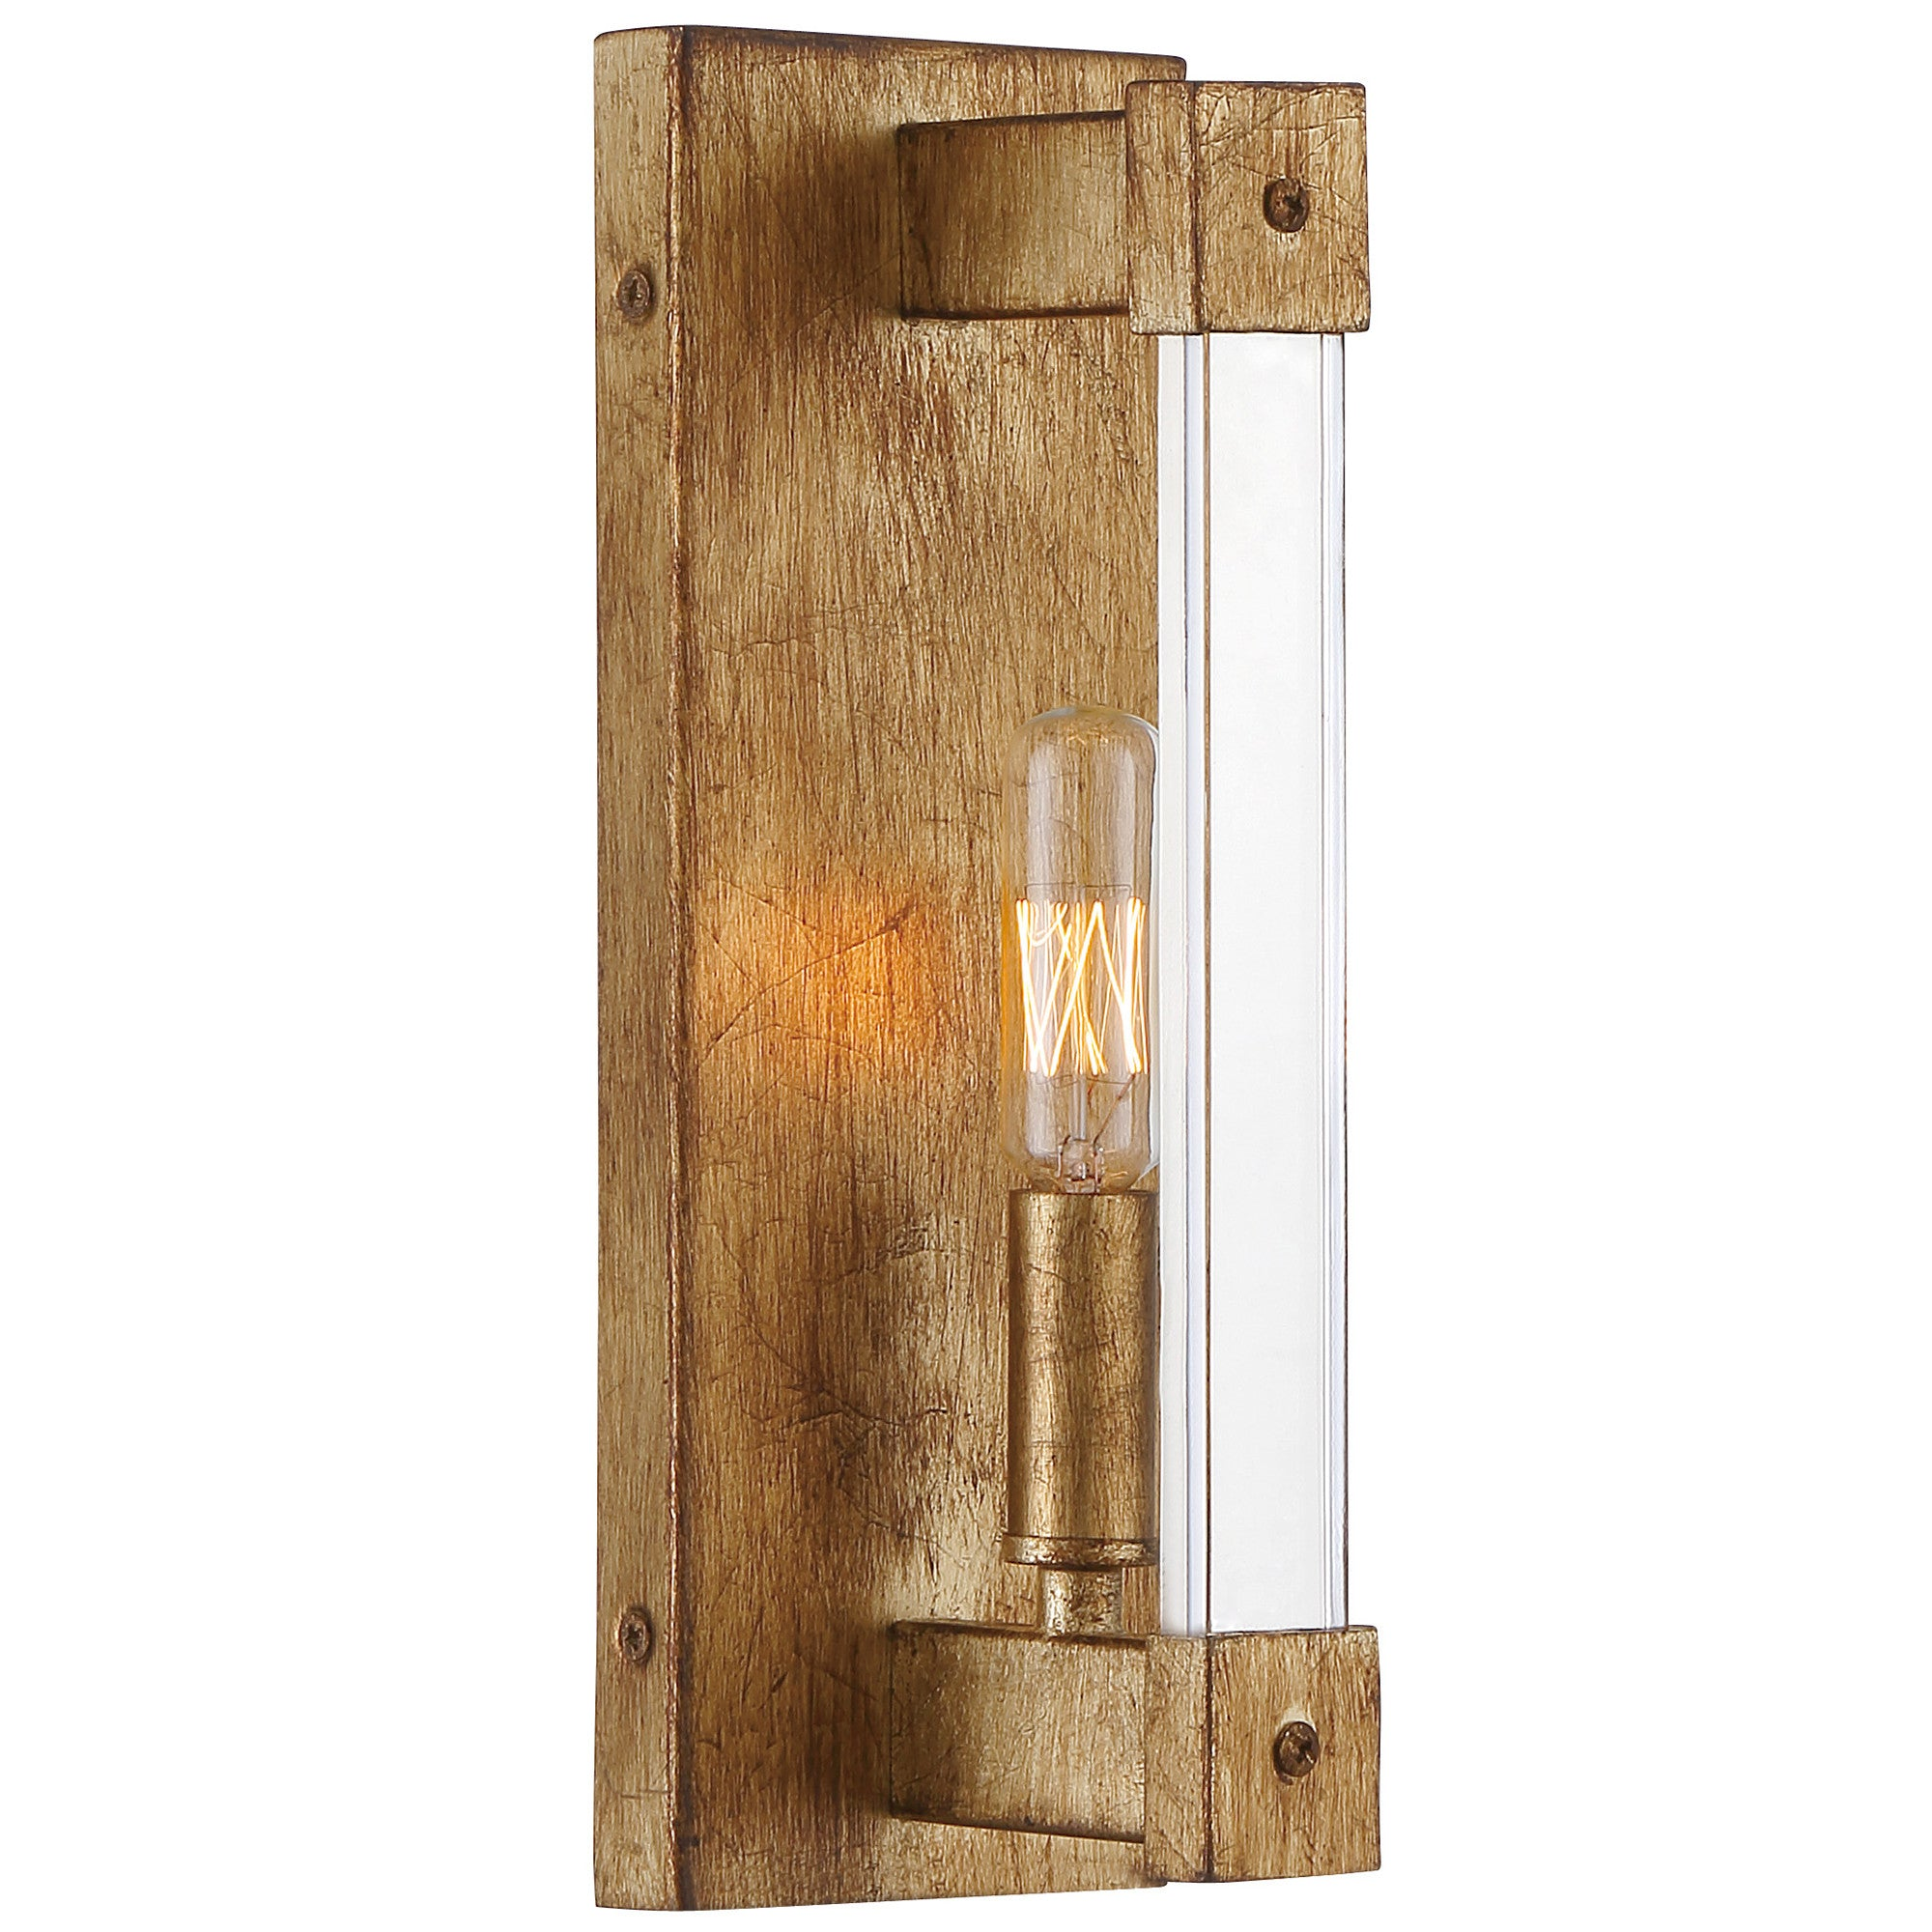 market wood of fixture vanity wall goods the copy lamp reclaimed sign products sconce place bathroom light